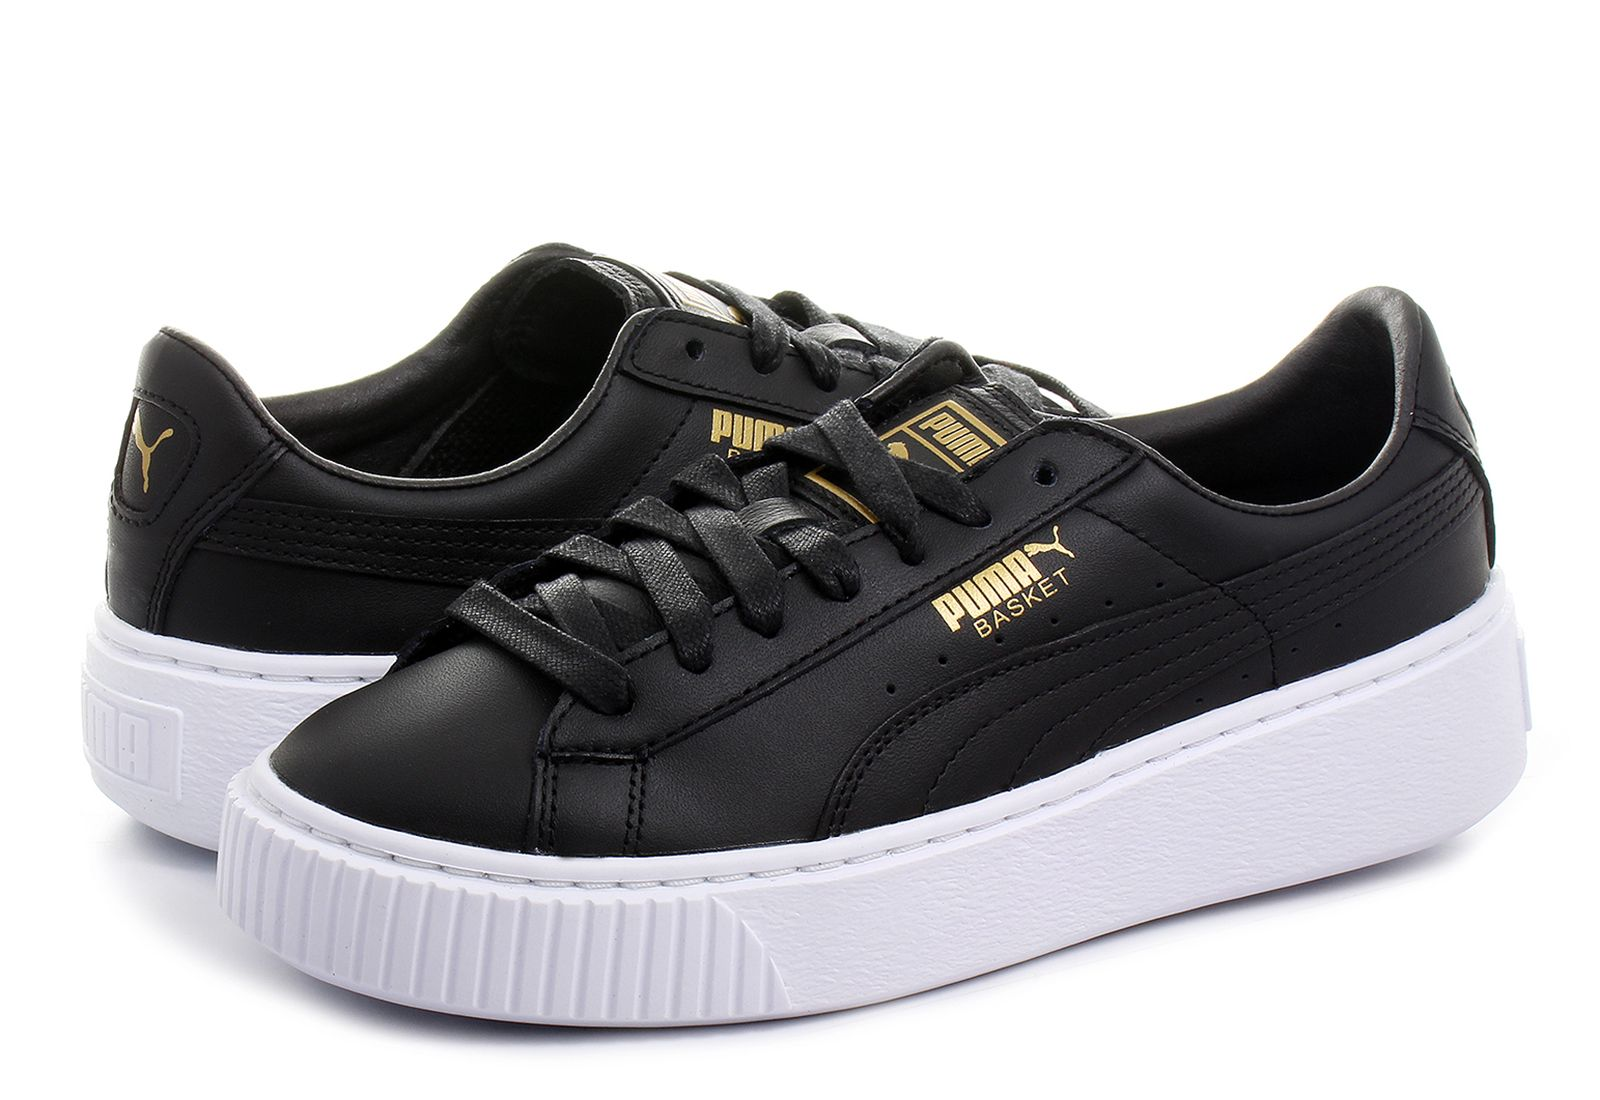 Puma Niske Cipele Crne Cipele - Basket Platform Core - Office Shoes ... f3f9fd8718